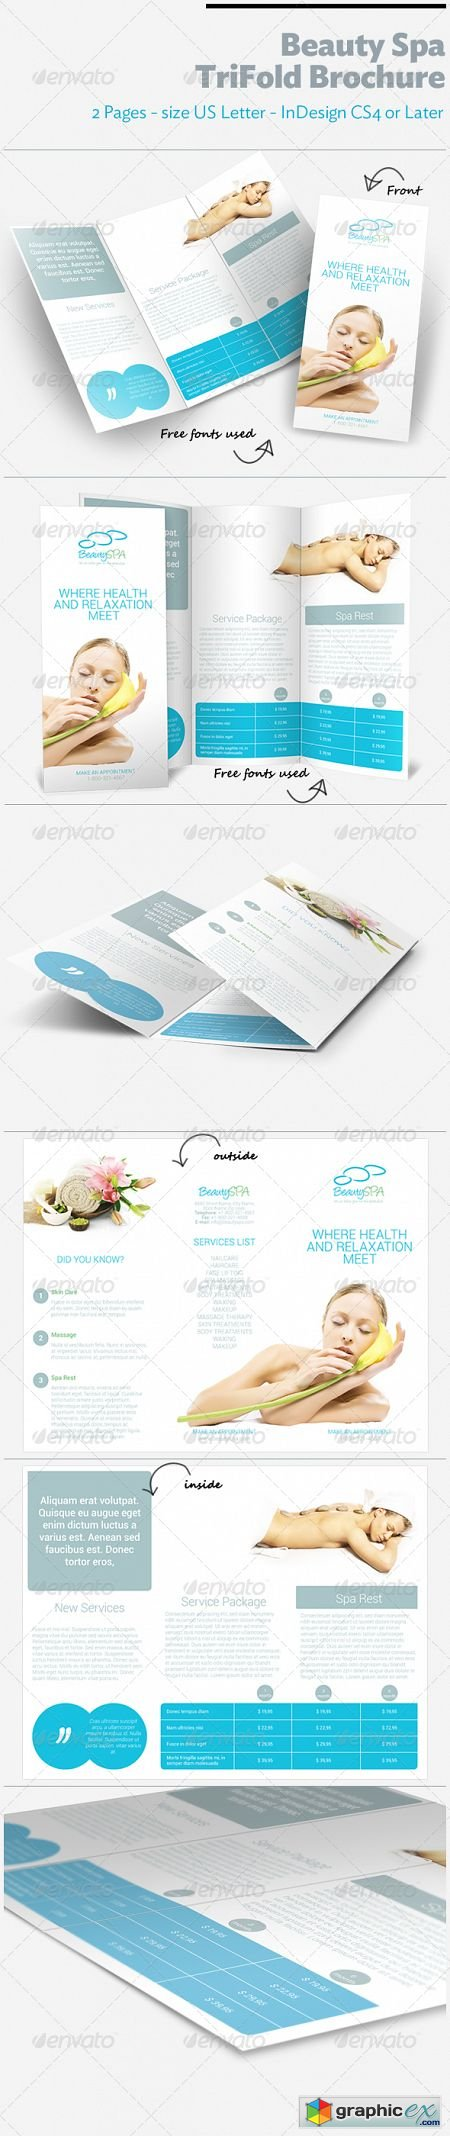 Beauty Spa TriFold Brochure 3651987